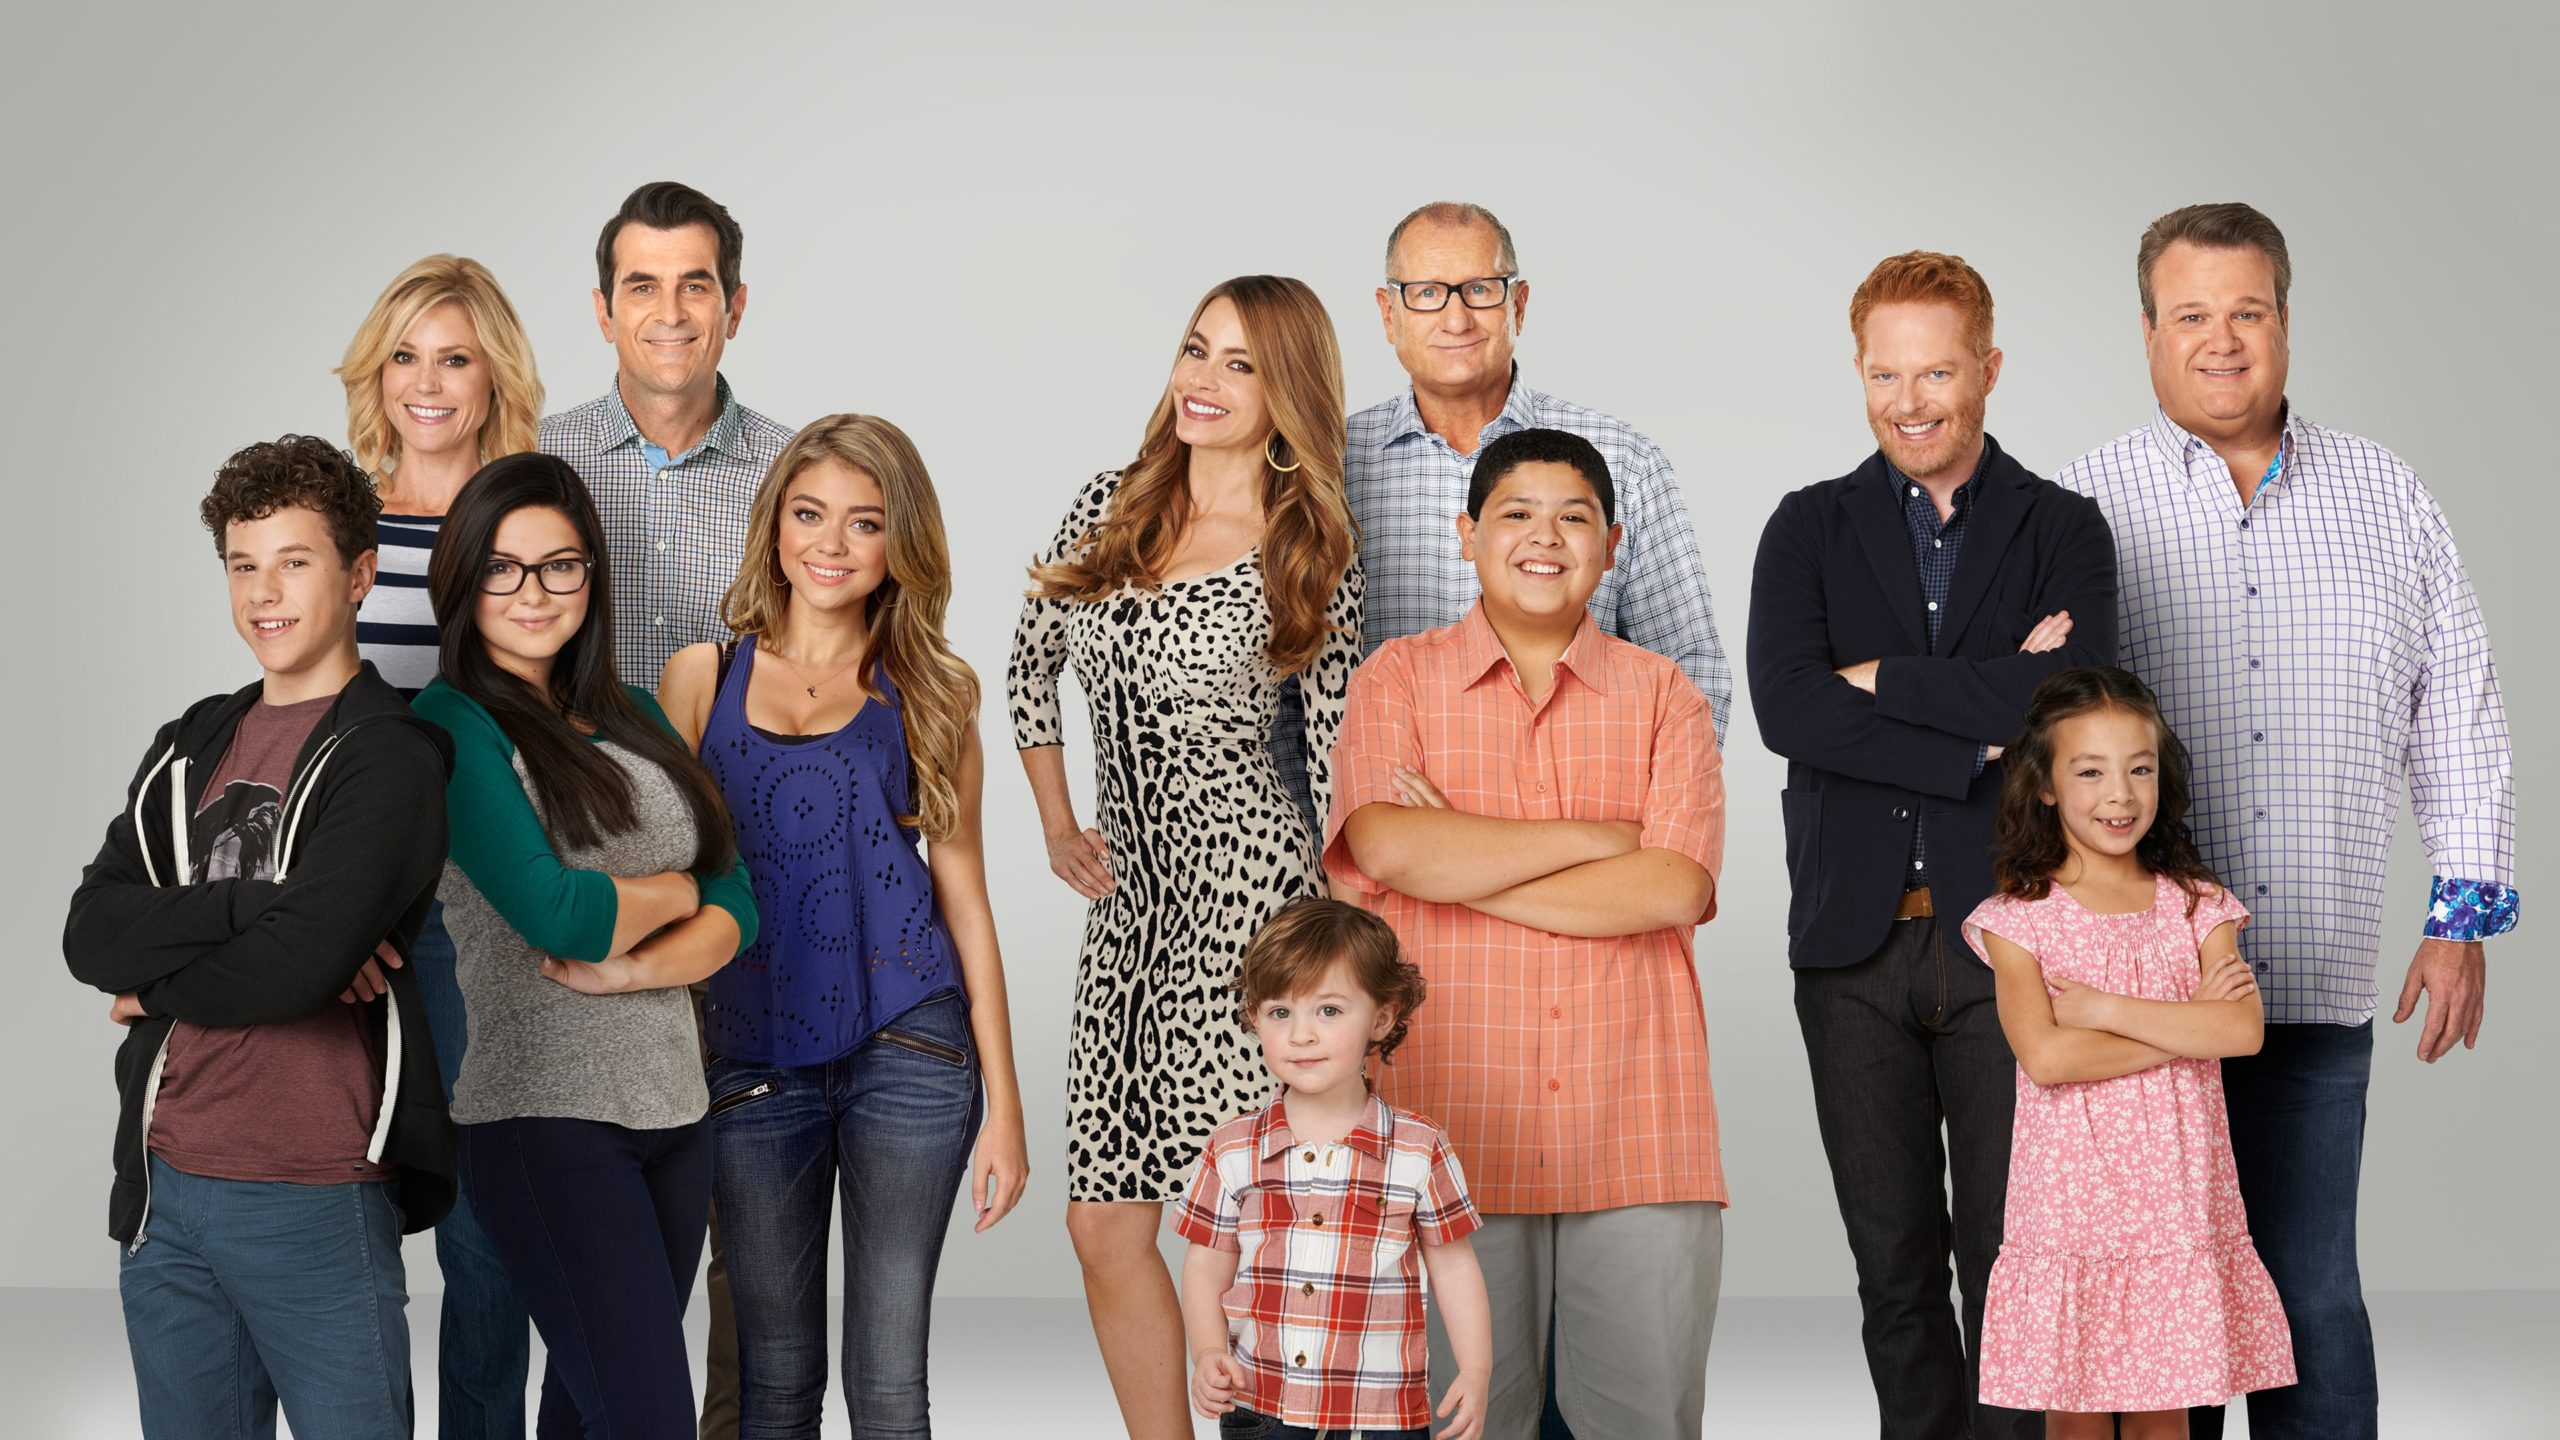 Modern Family is available to watch on NOW TV